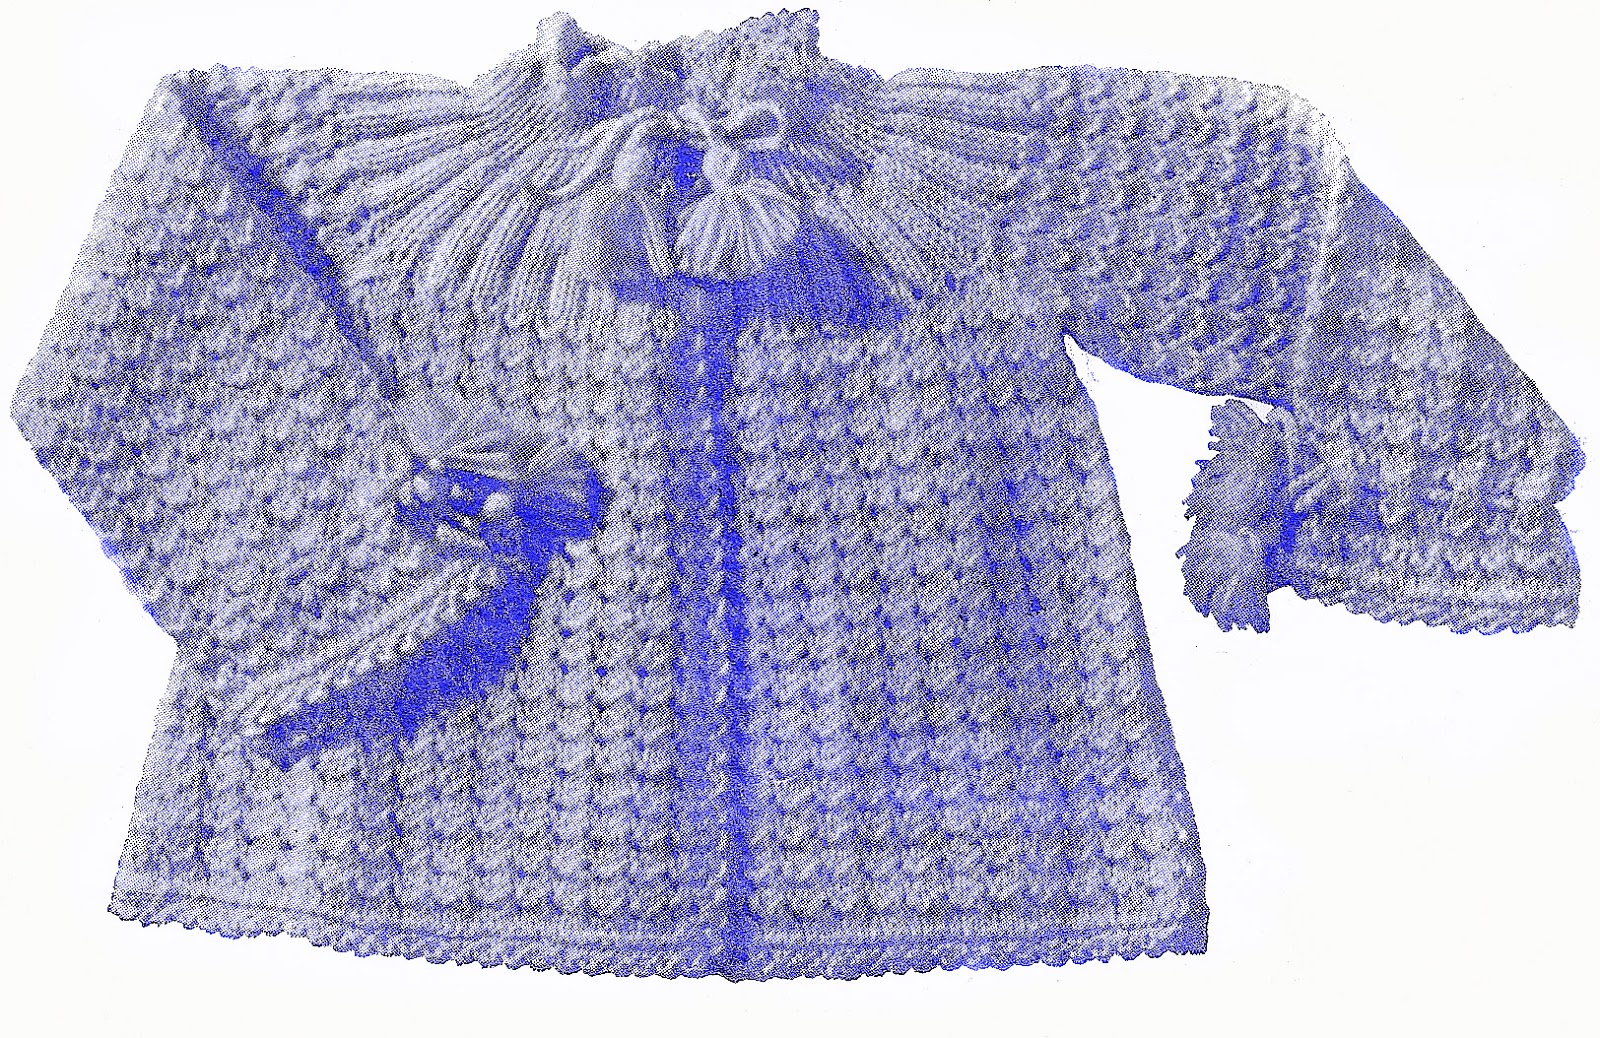 Knitting Ideas For Babies : Sentimental baby vintage knit patterns for babies